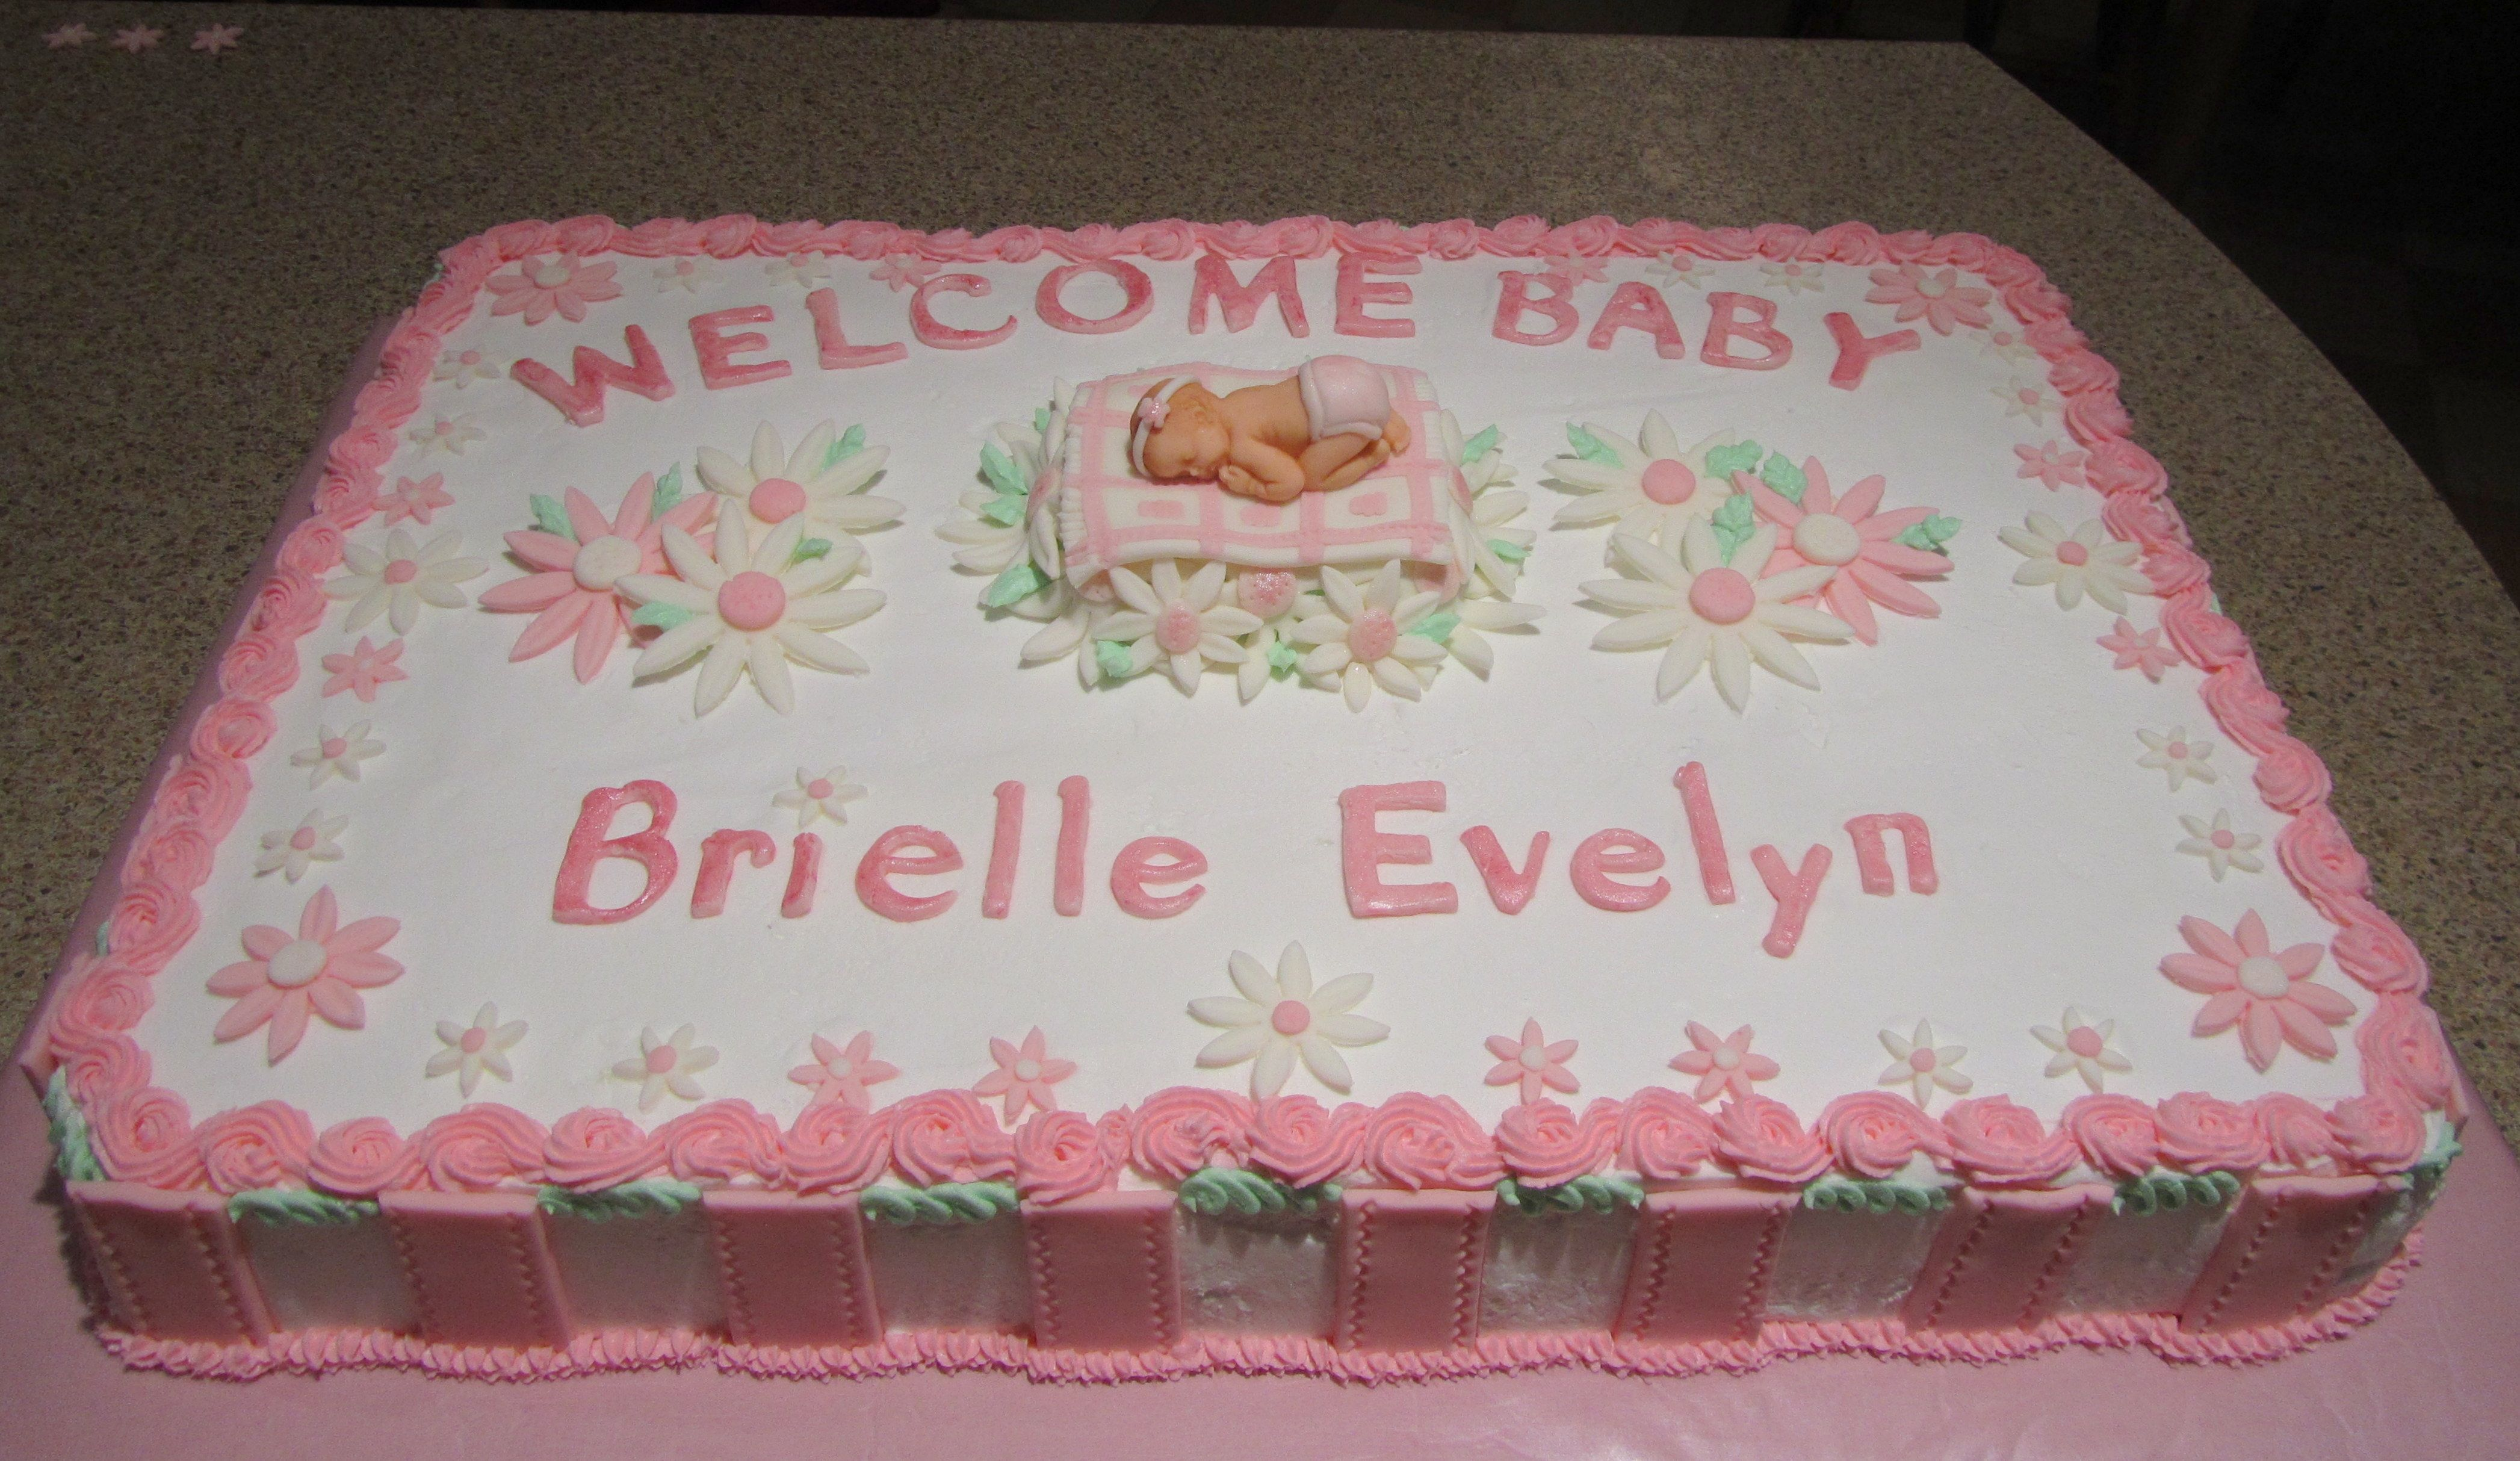 Wel e Baby 12 sheet cake celebrating the arrival of a